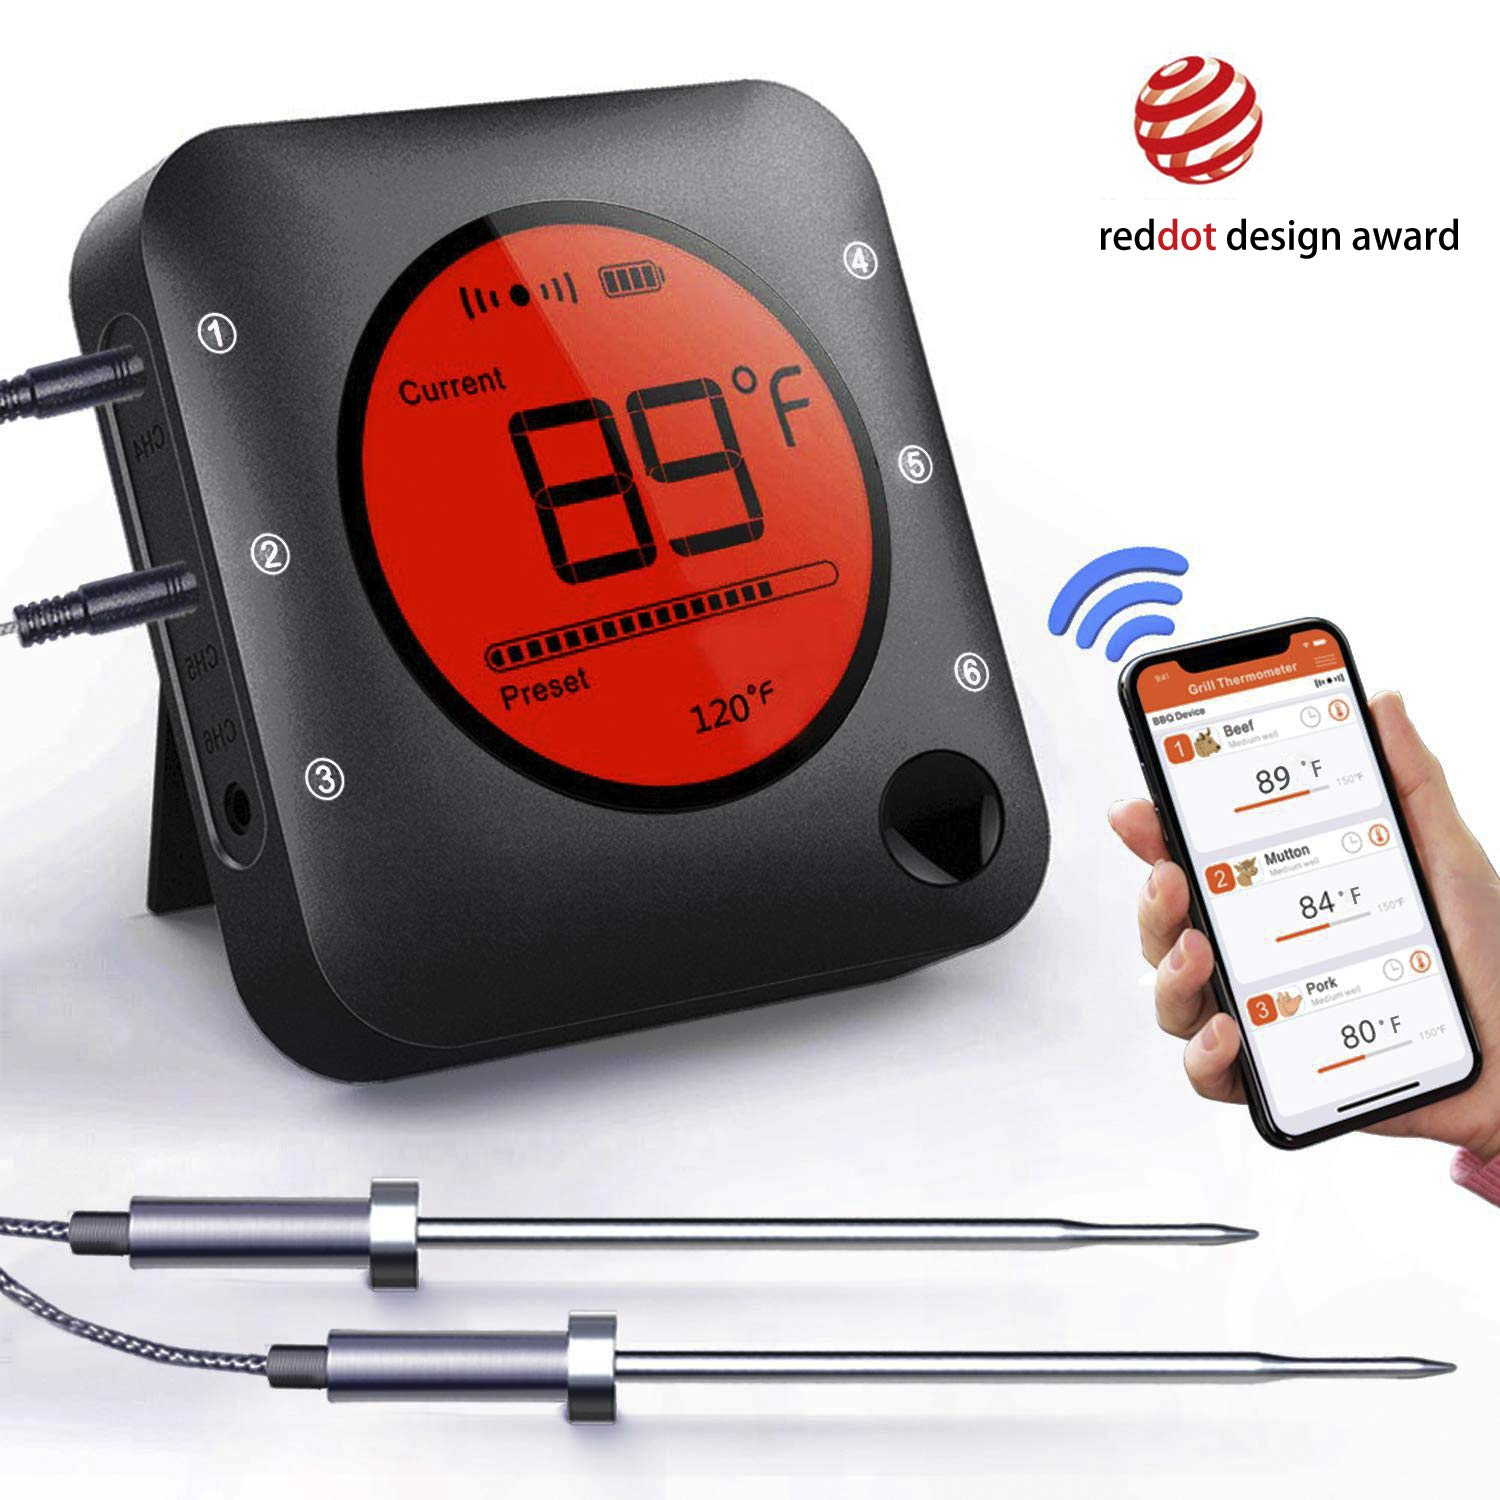 Smart Bluetooth BBQ Grill Thermometer Wireless Bluetooth 5.0 Barbecue Meat Thermometer with 2 Stainless Steel Probes, APP Smart Alarm, Large LCD Display for Grilling Smoker, Barbecue, Outdoor Cooking by Bfour